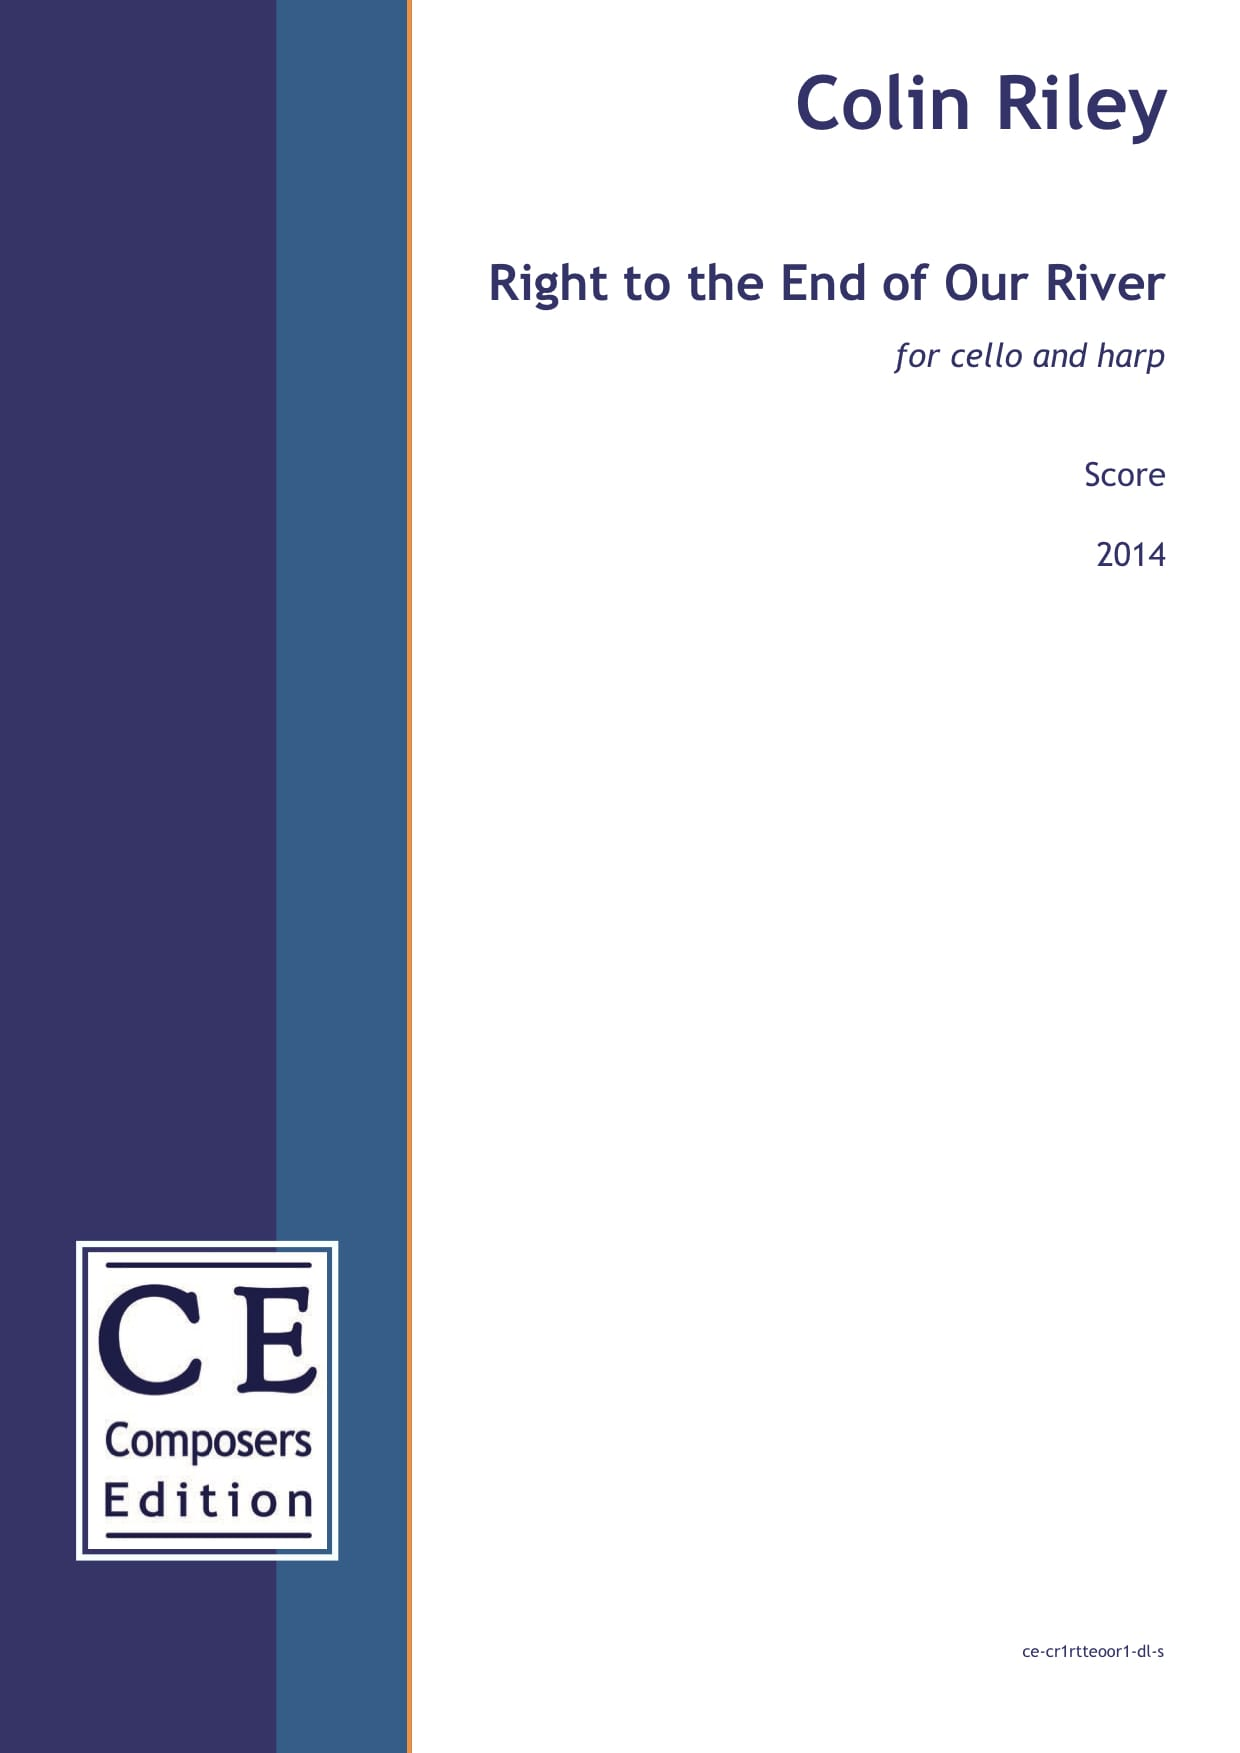 Colin Riley: Right to the End of Our River (cello and harp version) for cello and harp